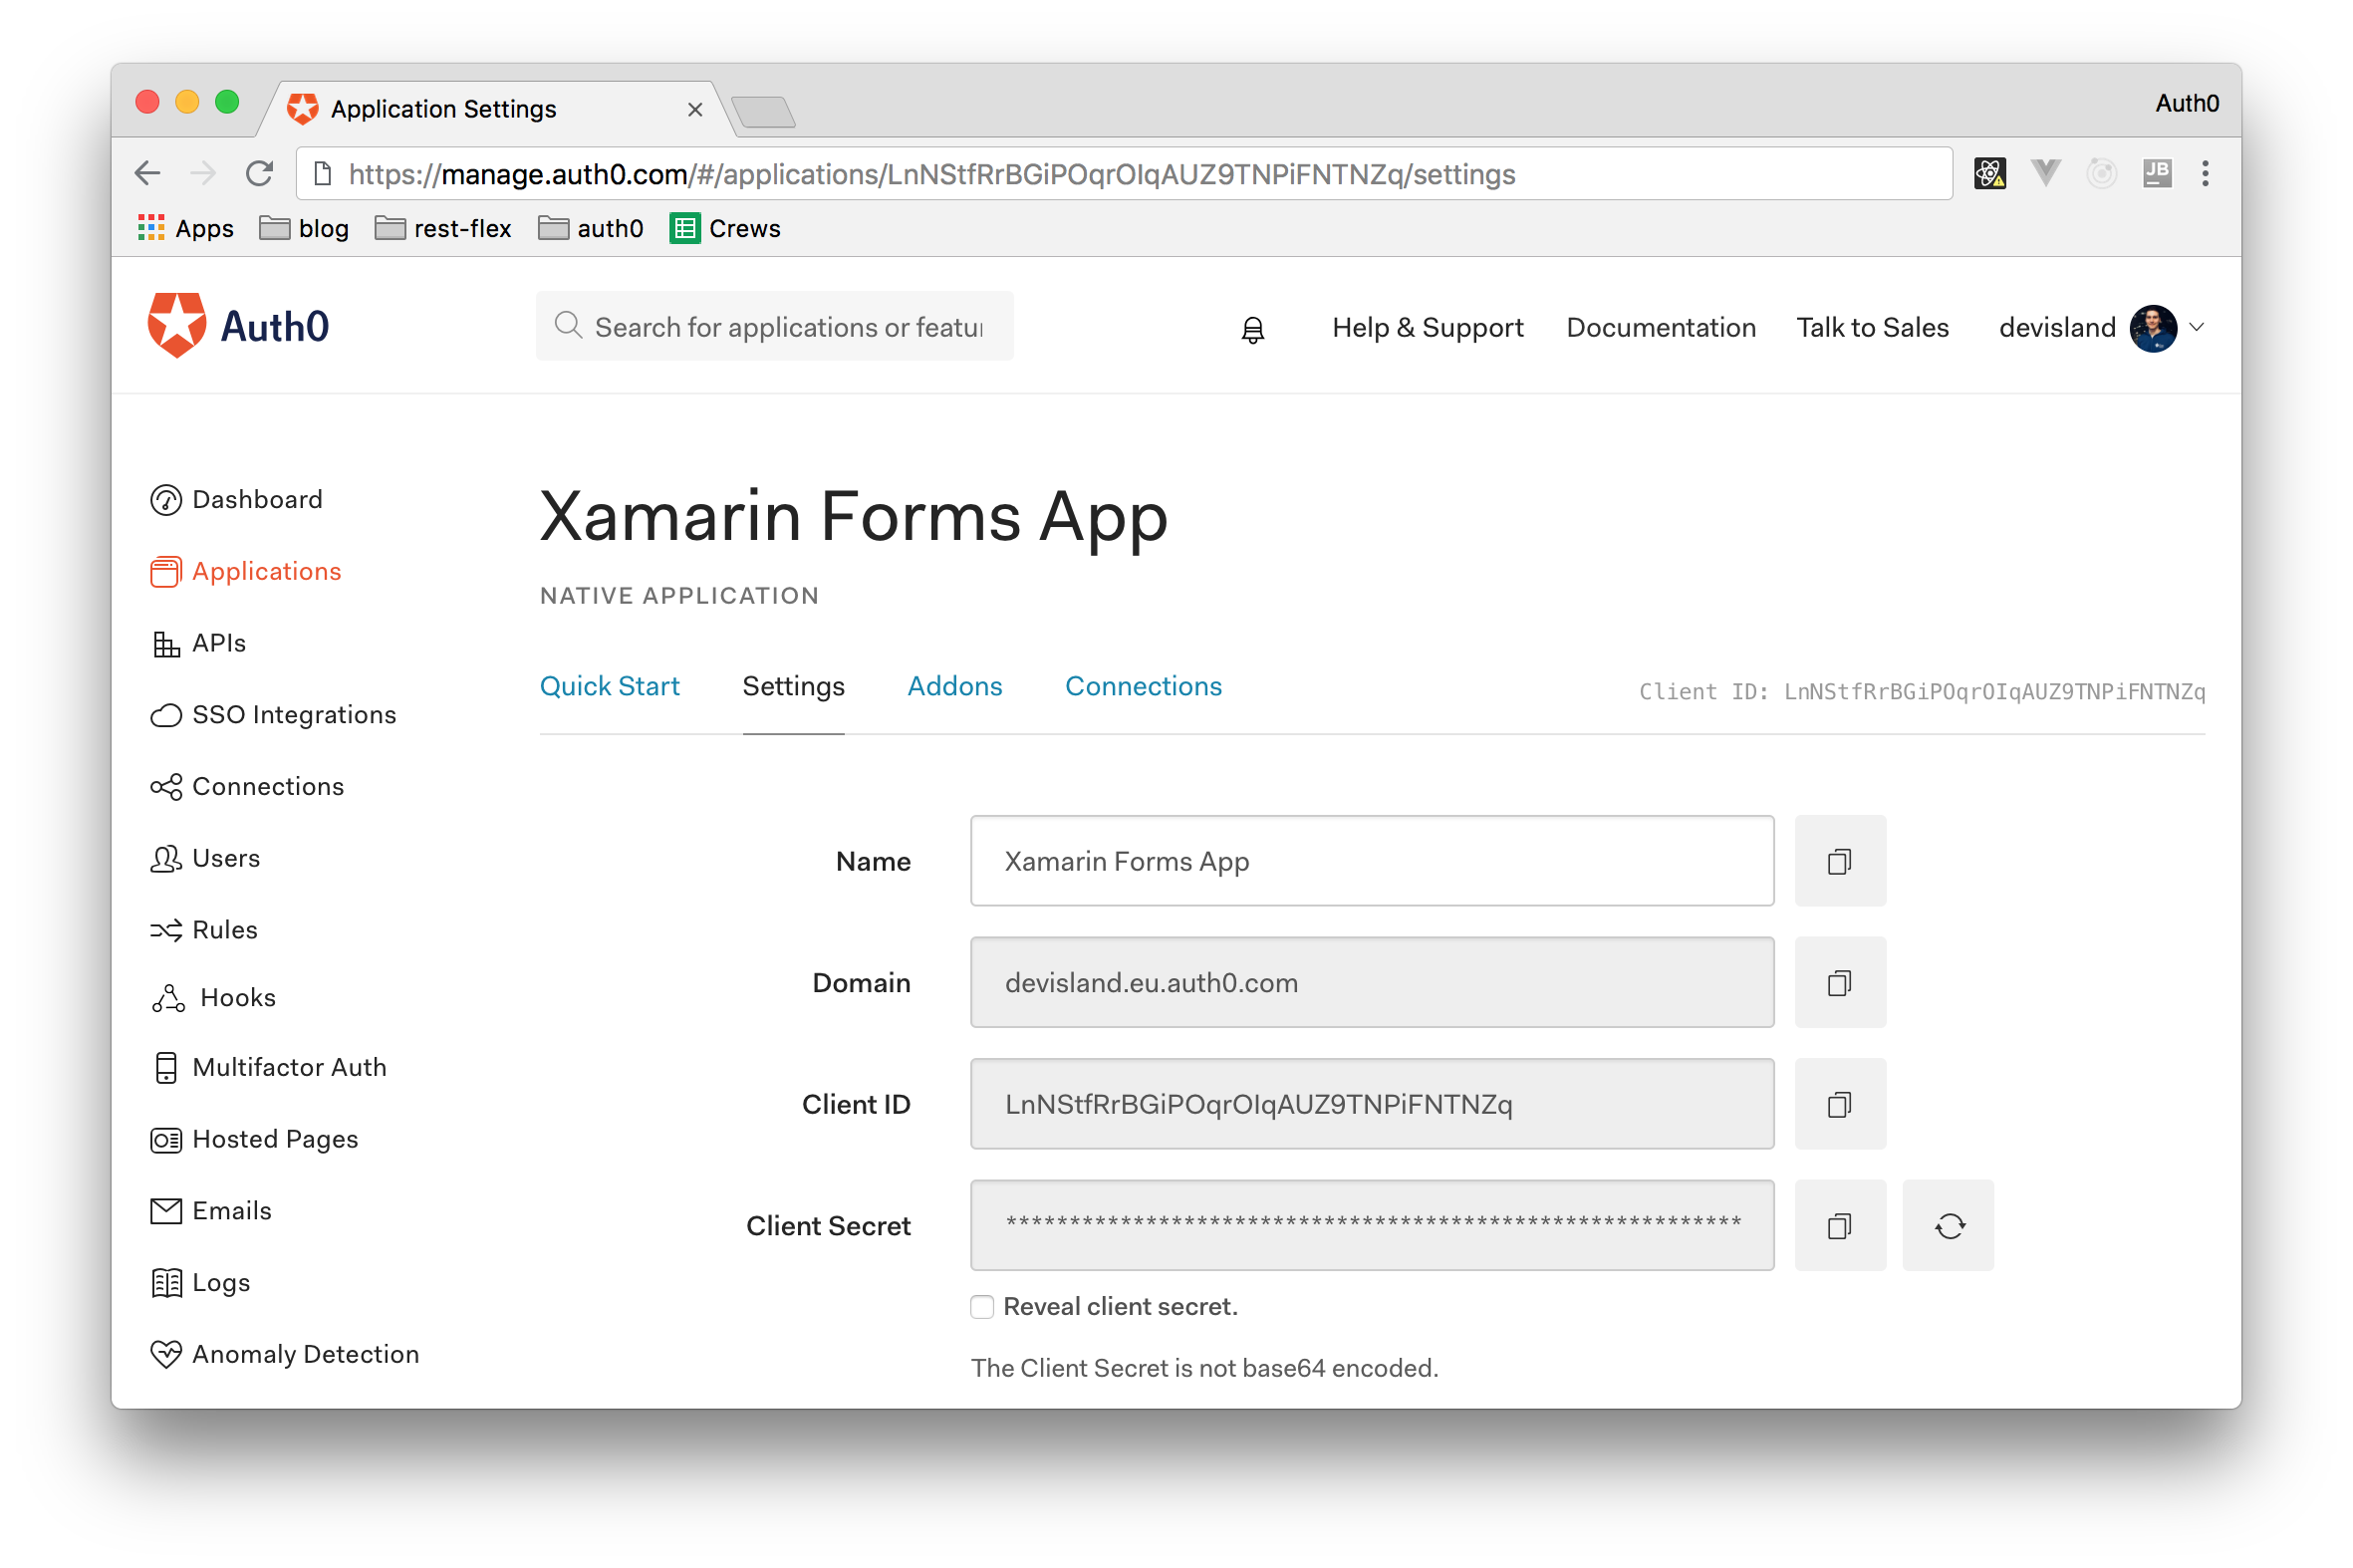 Creating a Native Application for Xamarin Forms in the Auth0 Dashboard